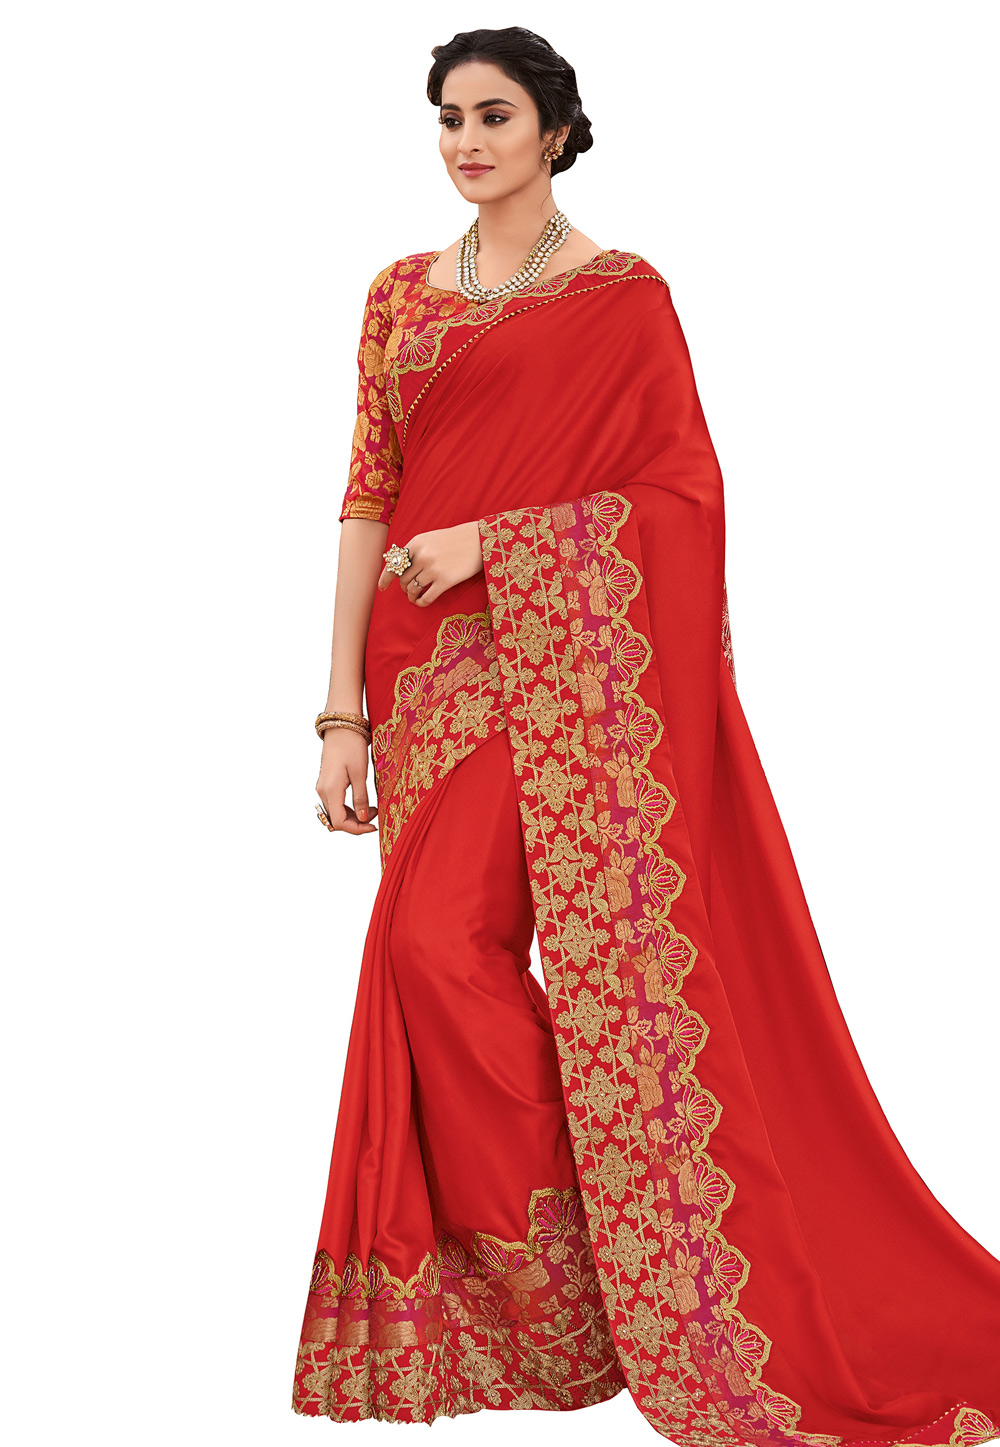 Red Satin Embroidered Saree With Blouse 169229